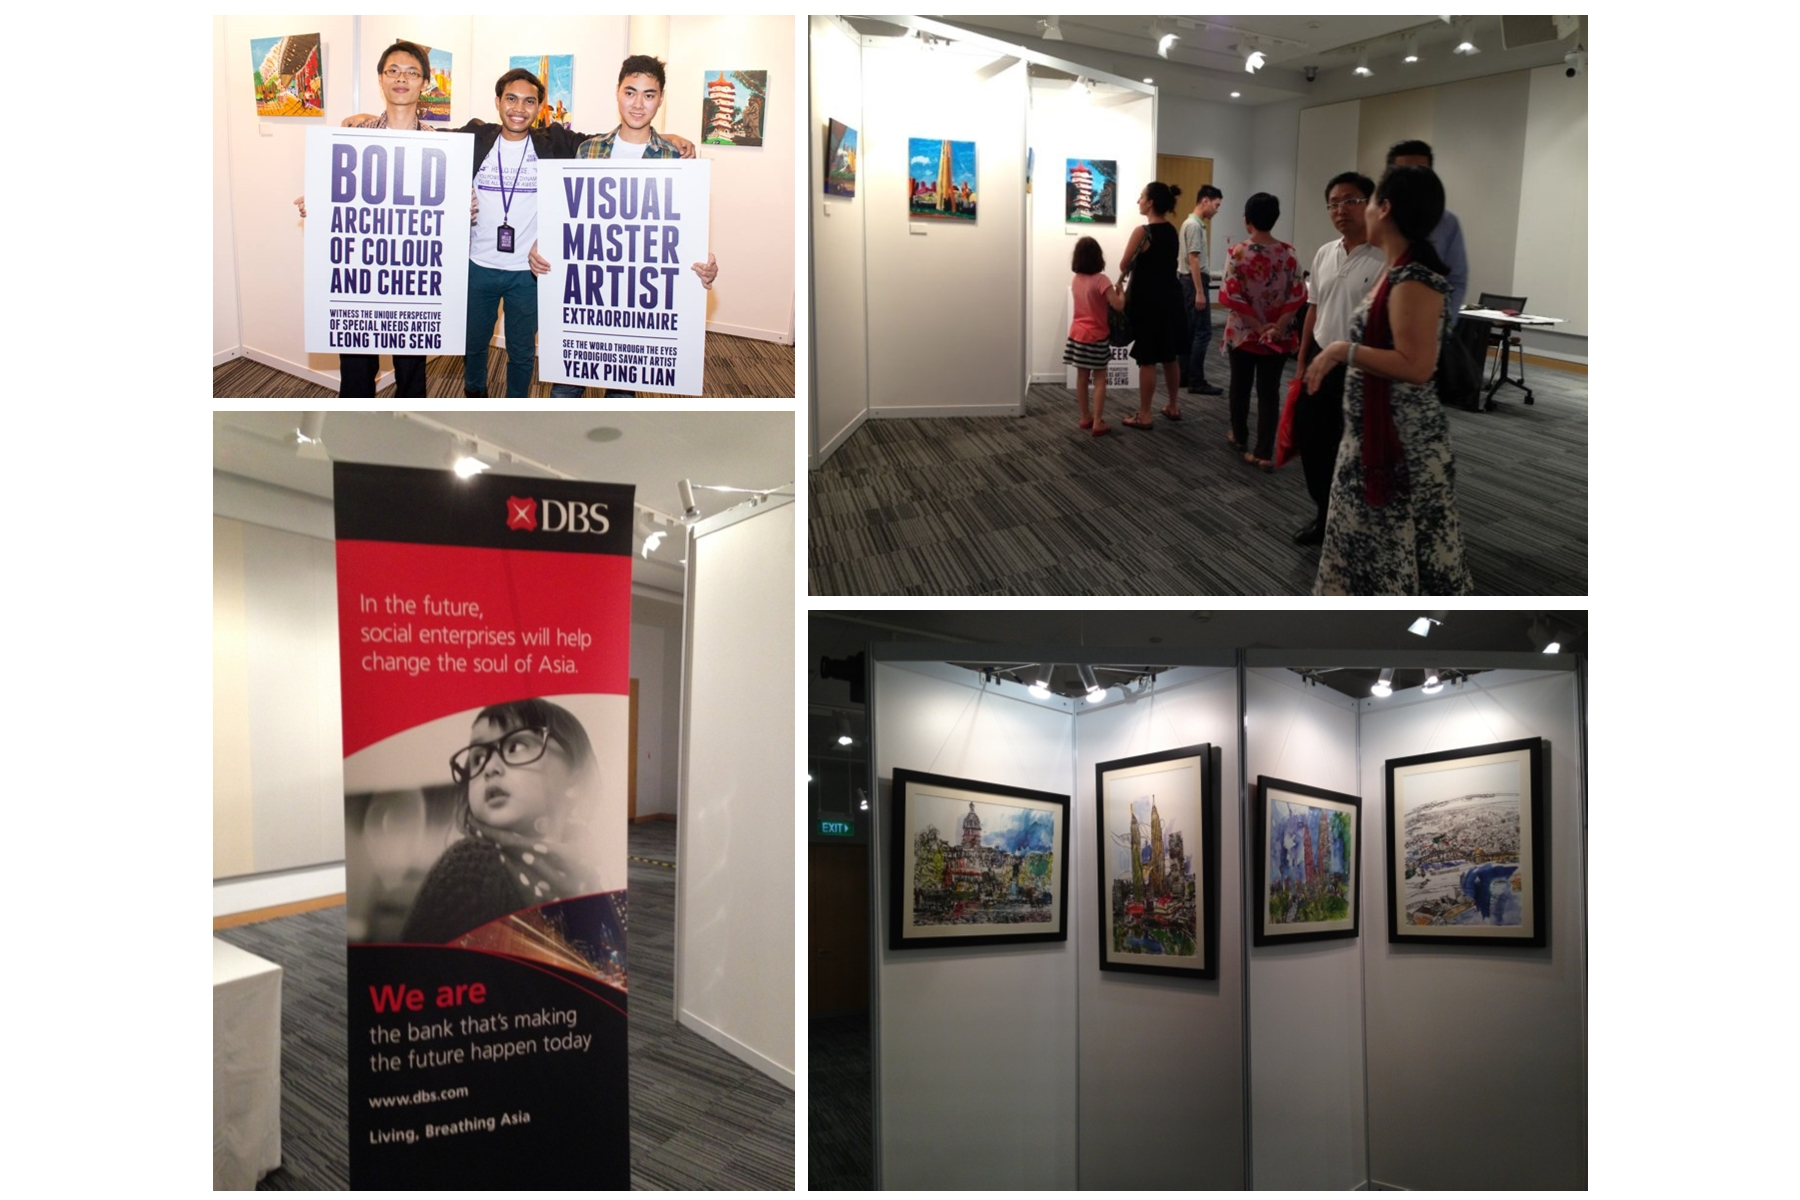 TER@Corporate Event - We hosted an art exhibition event @ DBS to showcase the original works of our artists , featuring Yeak Ping Lian ,a prodigious savant artist